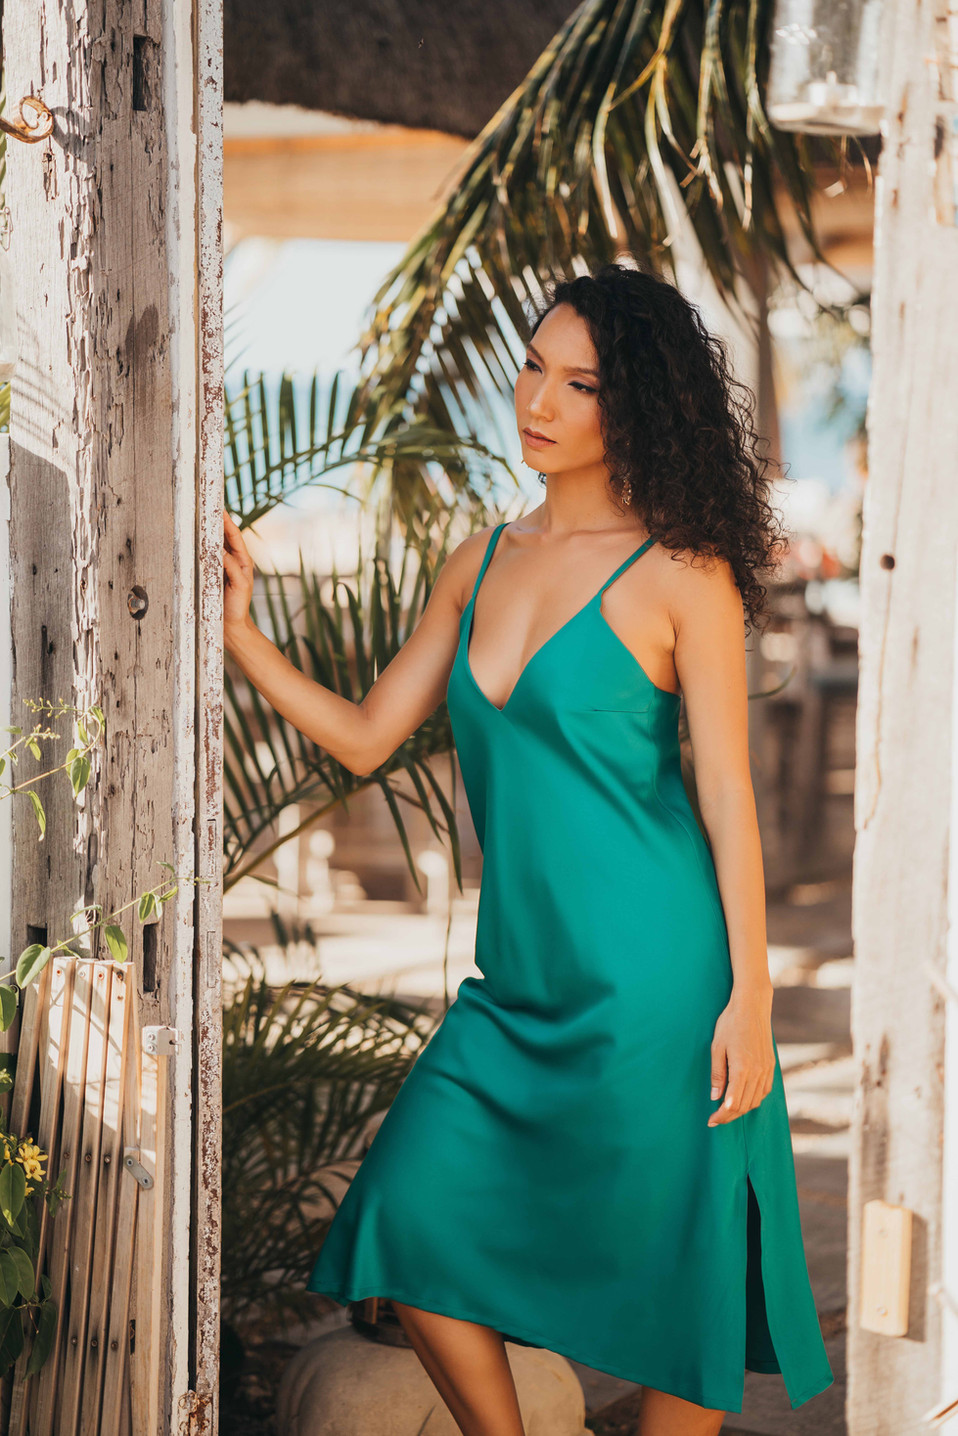 Saskia - Feminine Fashion made in Mauritius